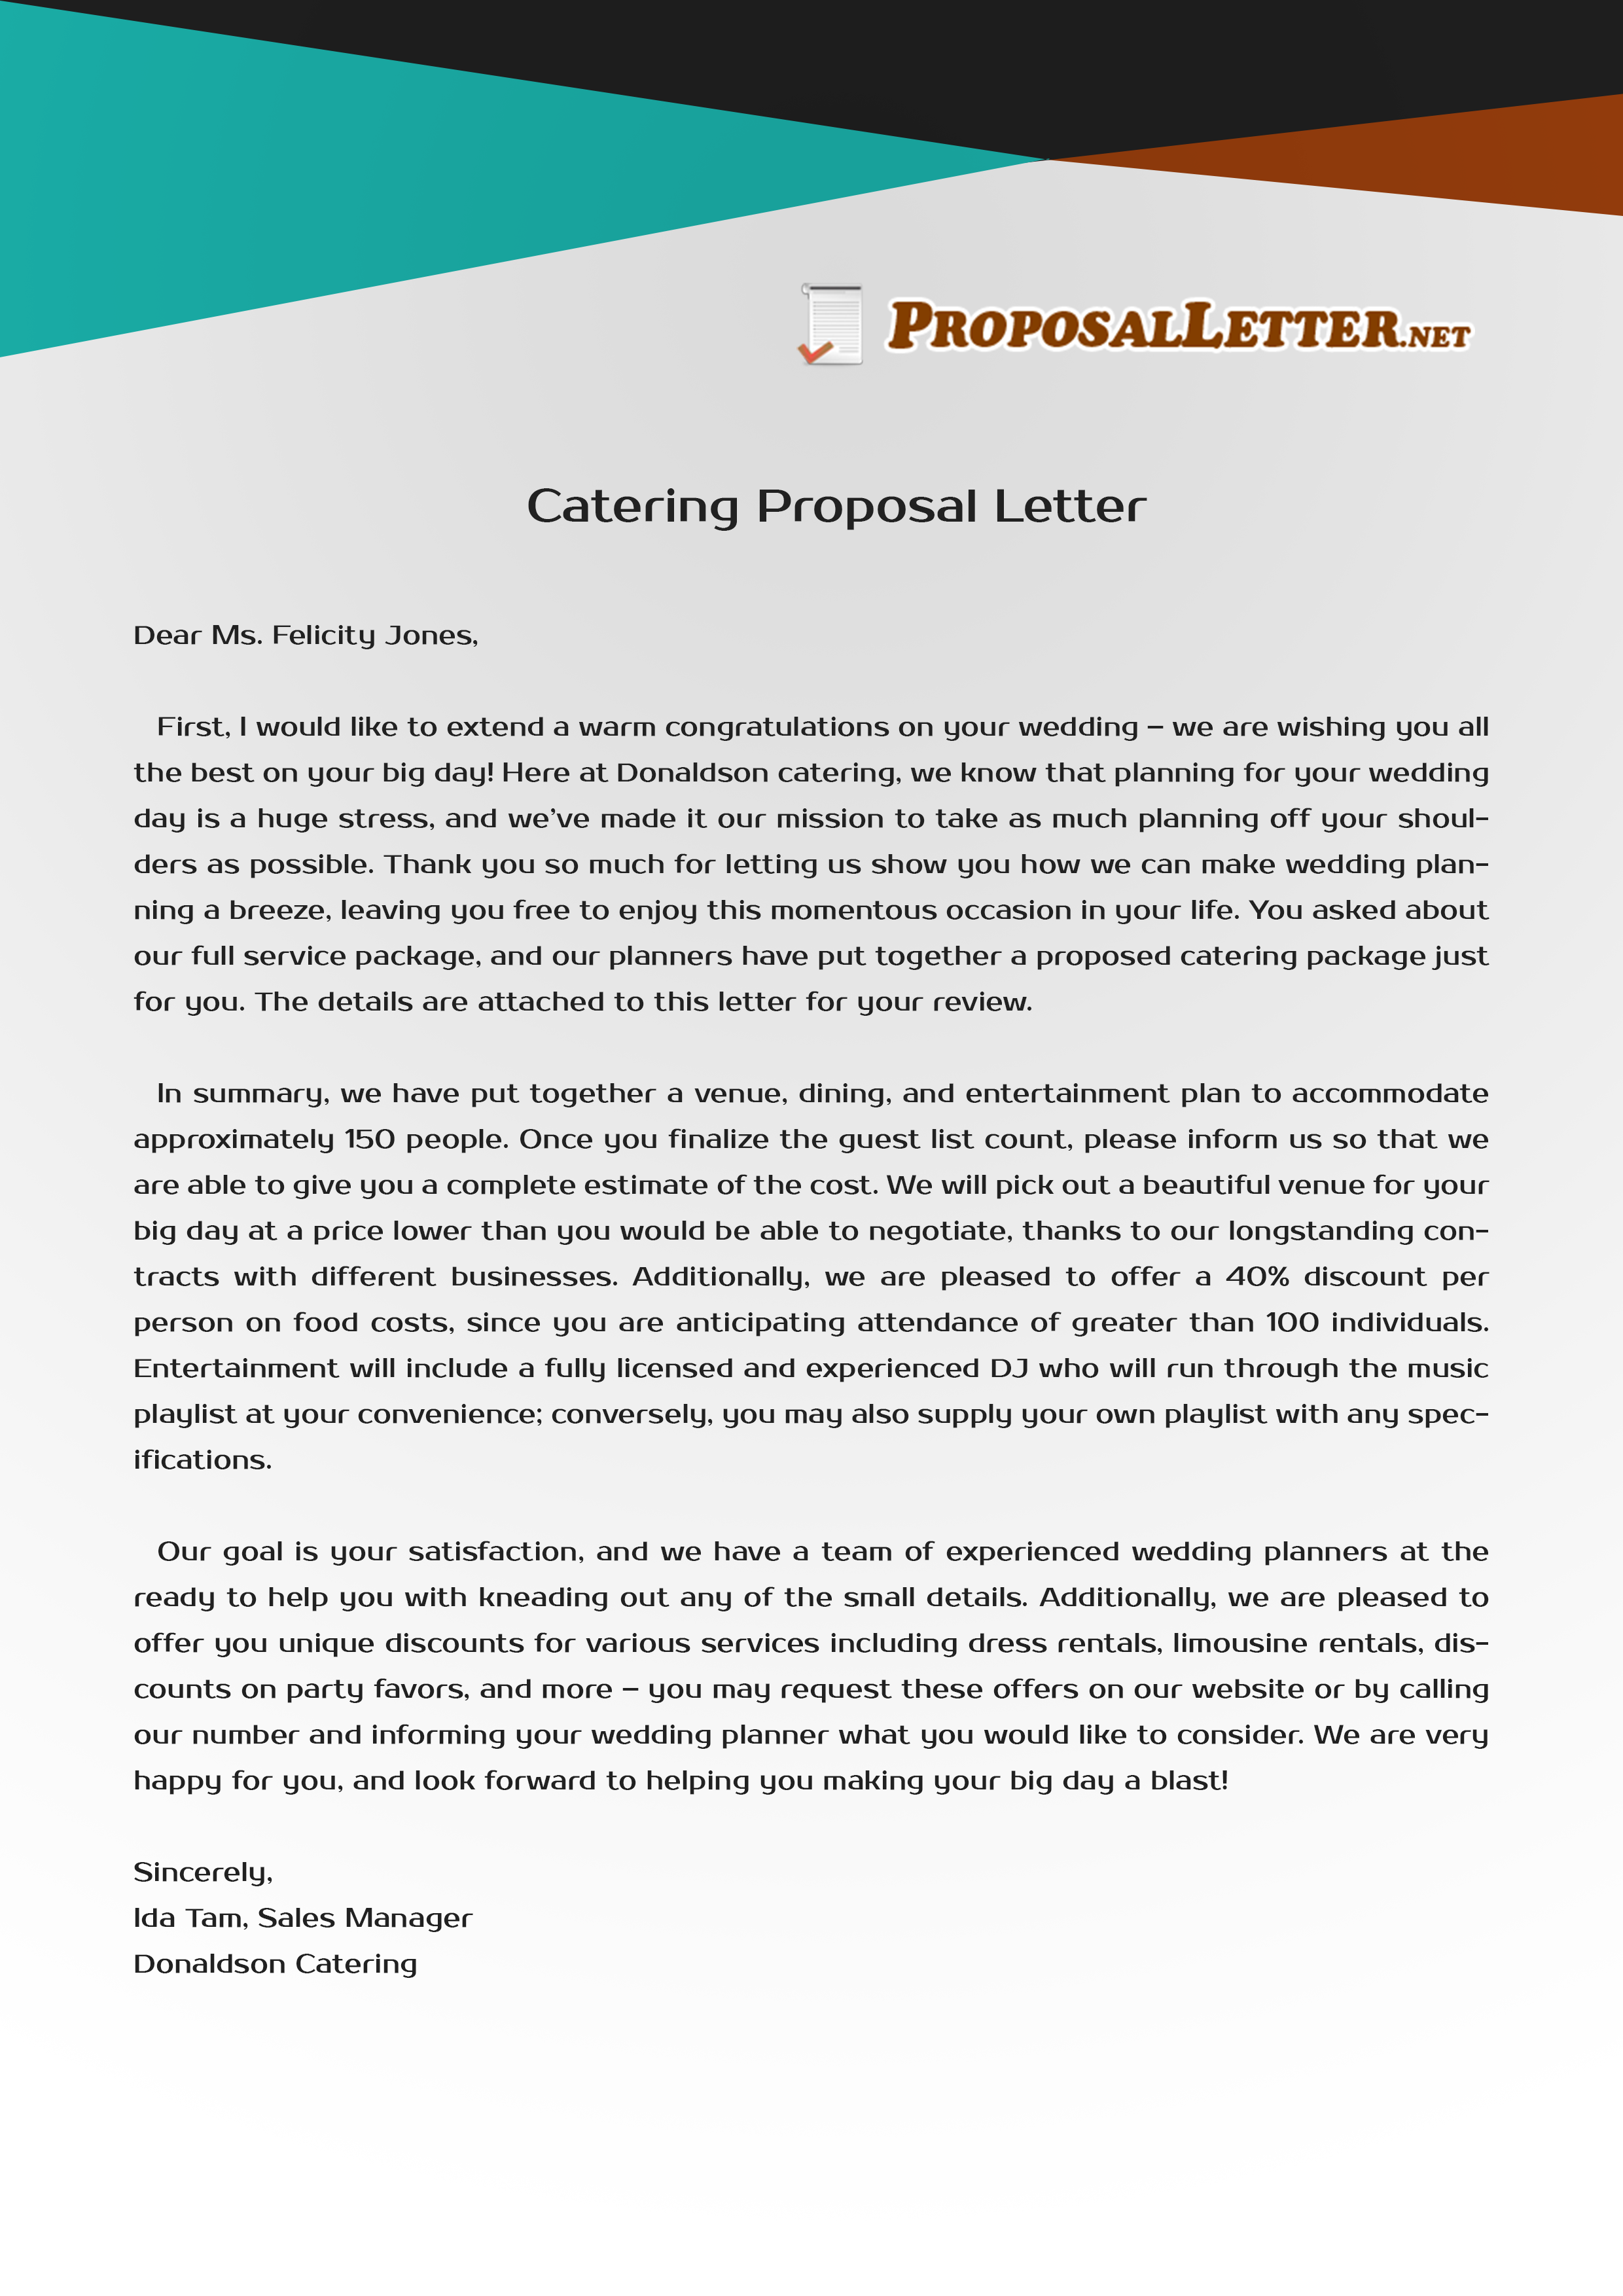 need help to write catering letter proposal  see these